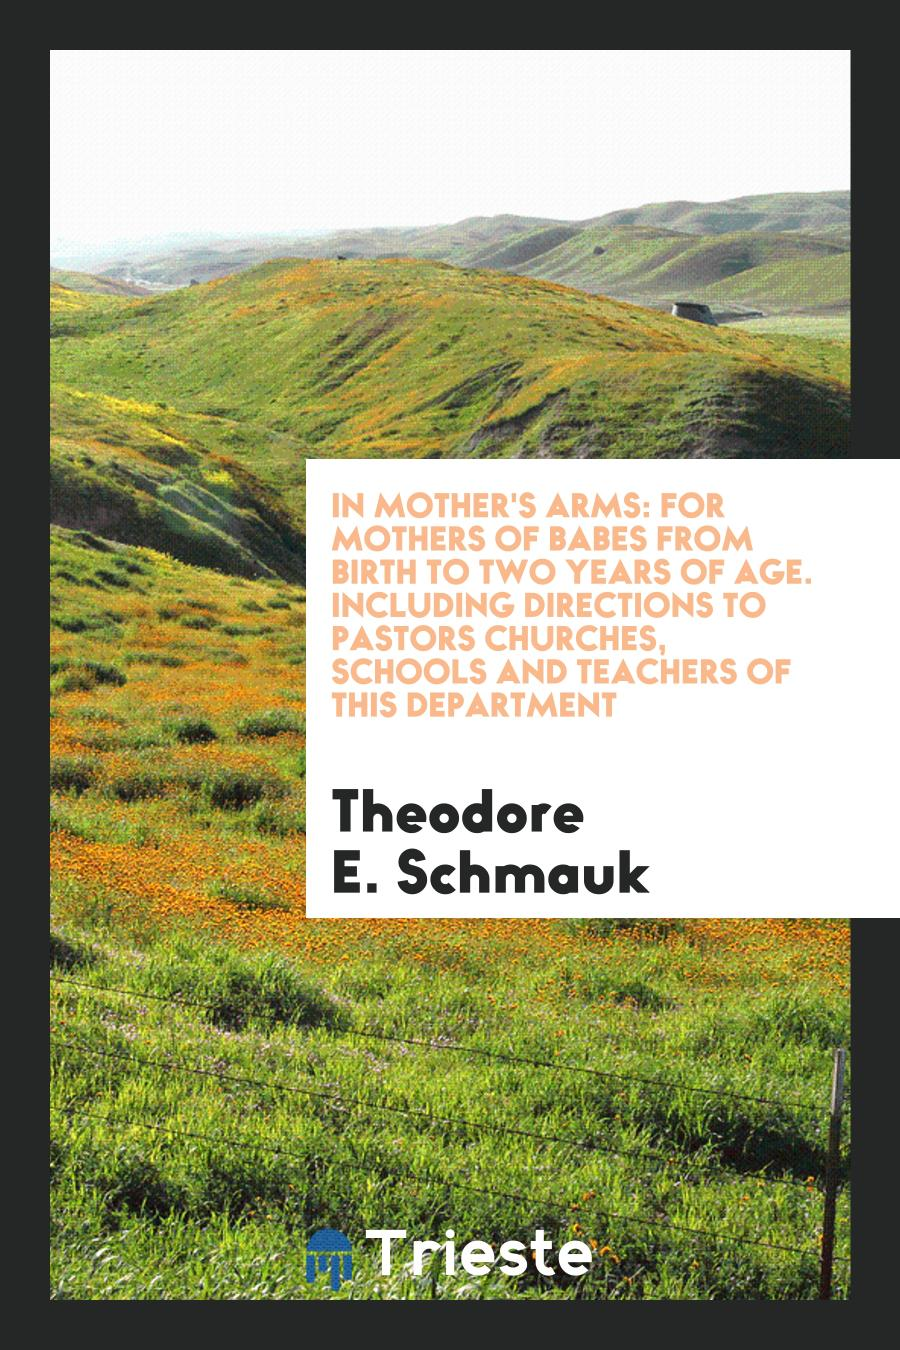 In Mother's Arms: For Mothers of Babes from Birth to Two Years of Age. Including Directions to Pastors Churches, Schools and Teachers of This Department